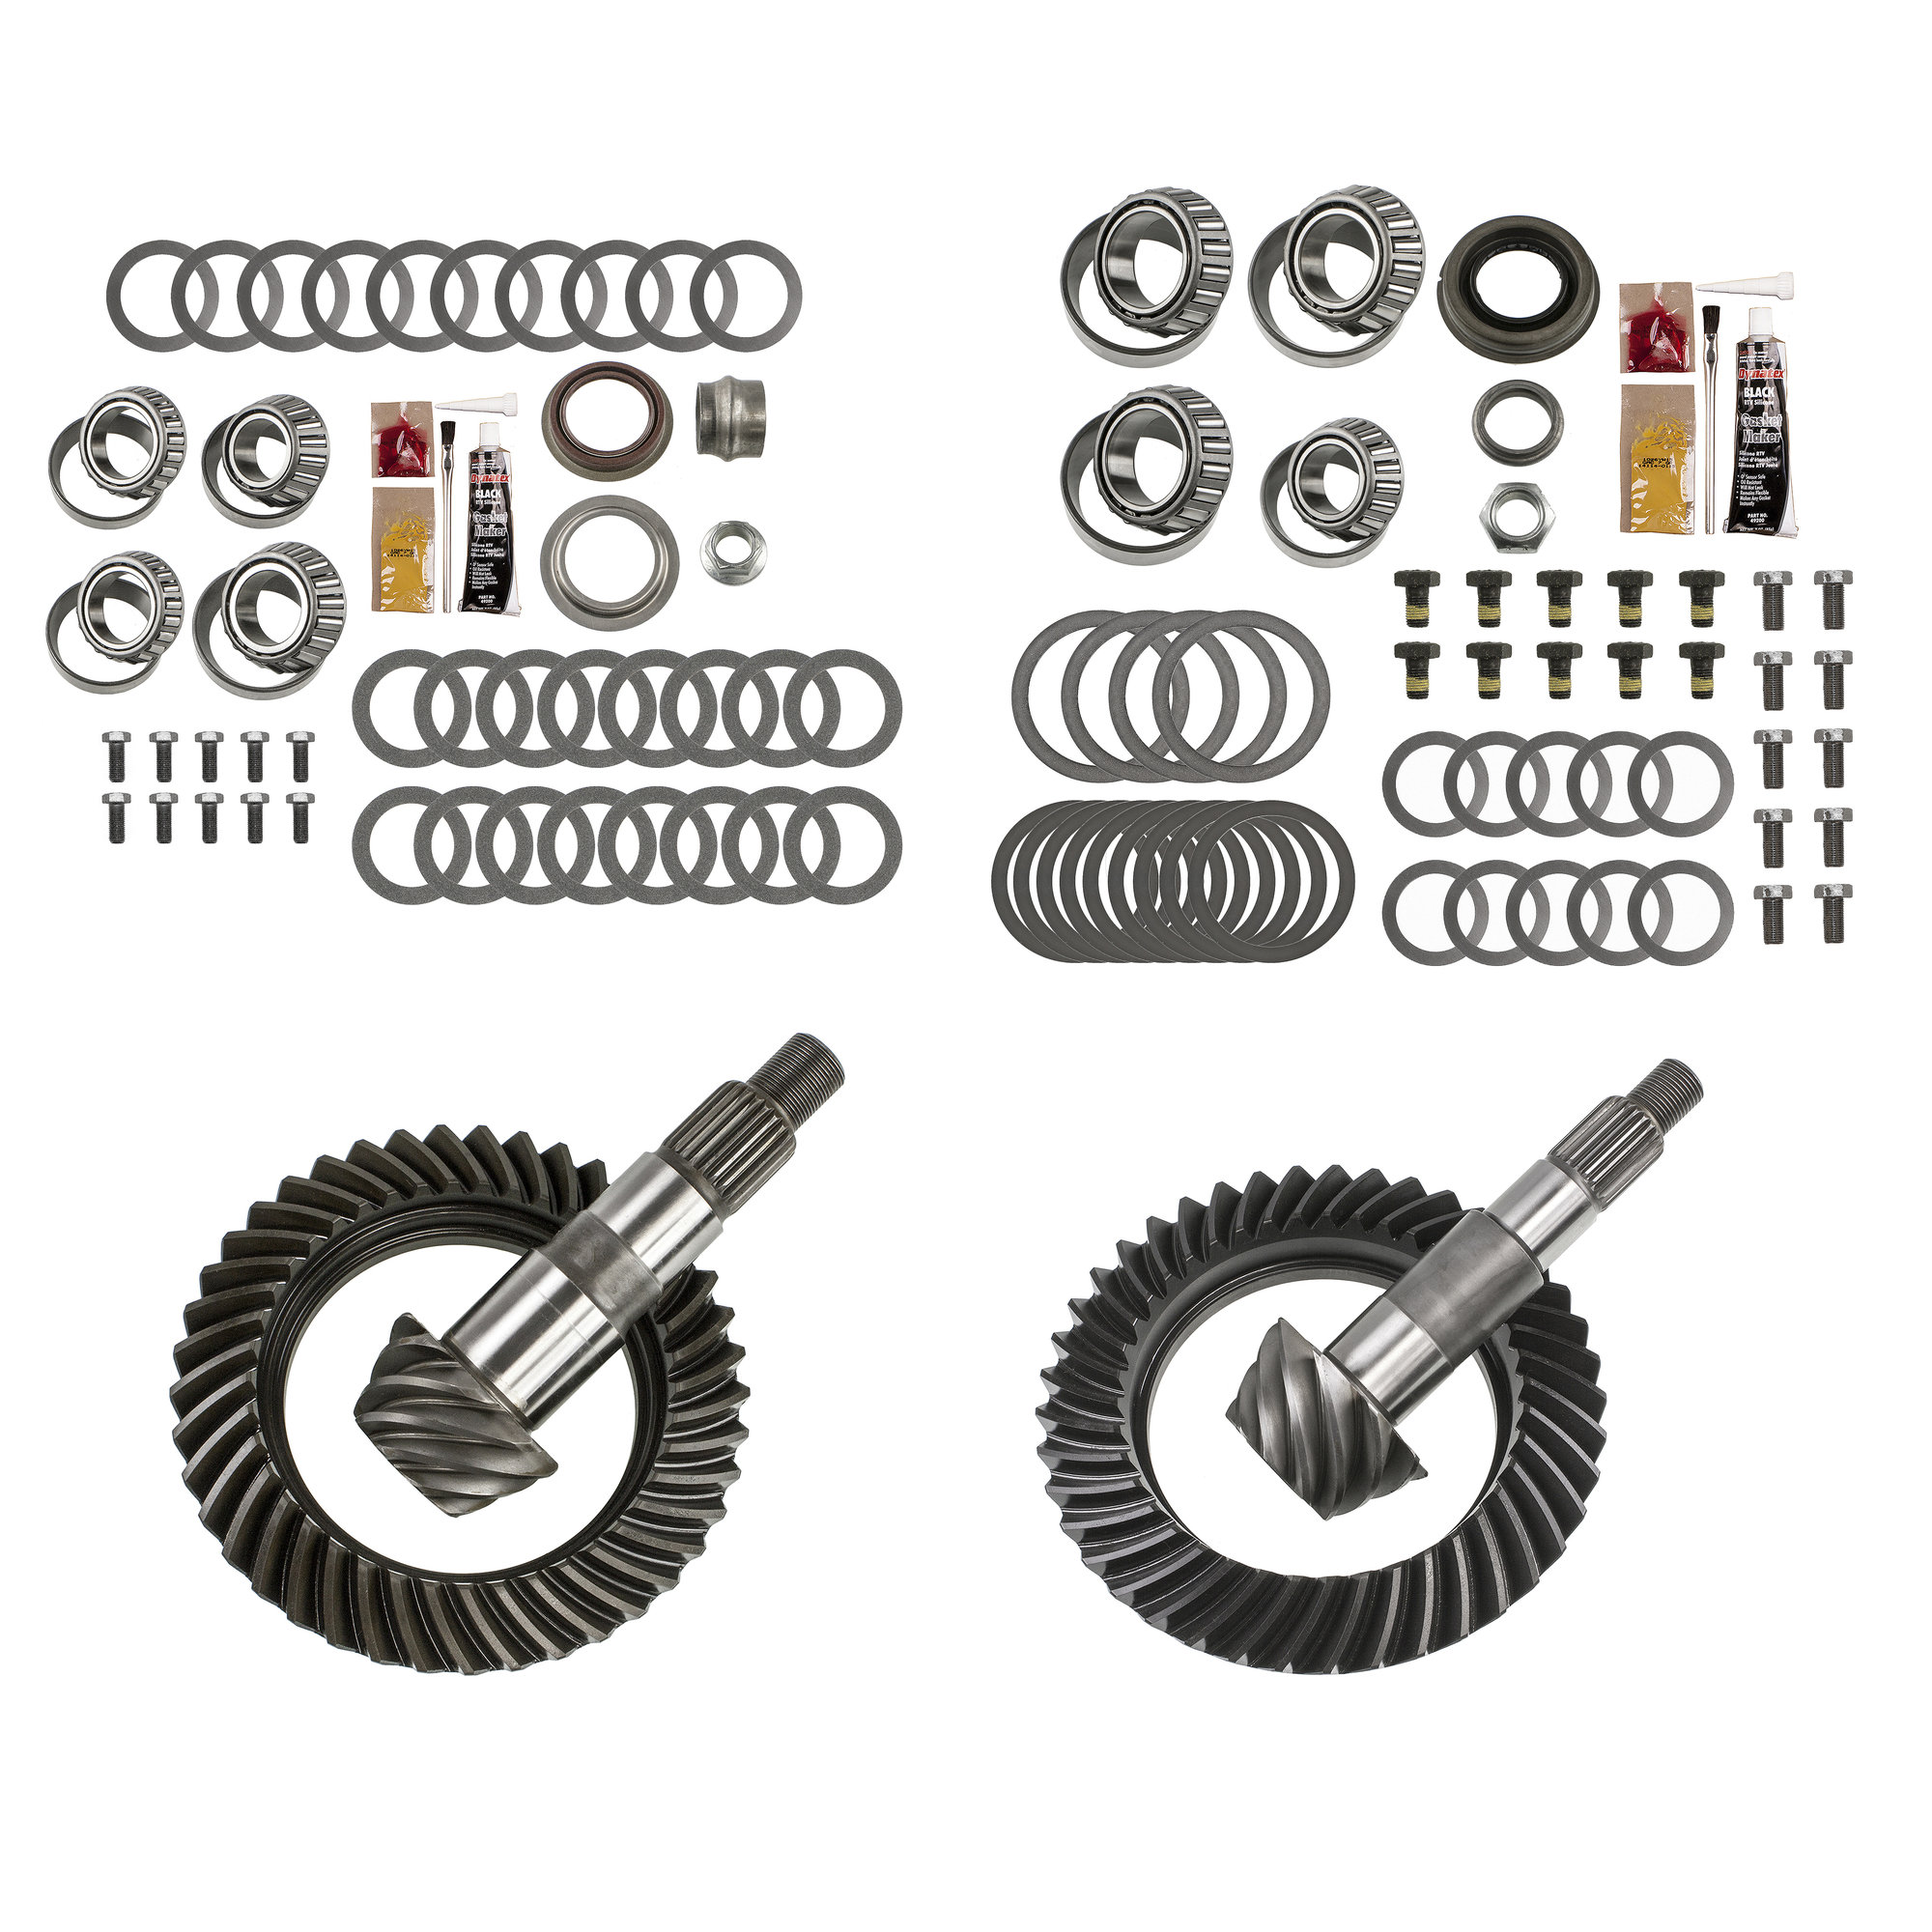 Motive Gear Front and Rear Ring and Pinion with Master